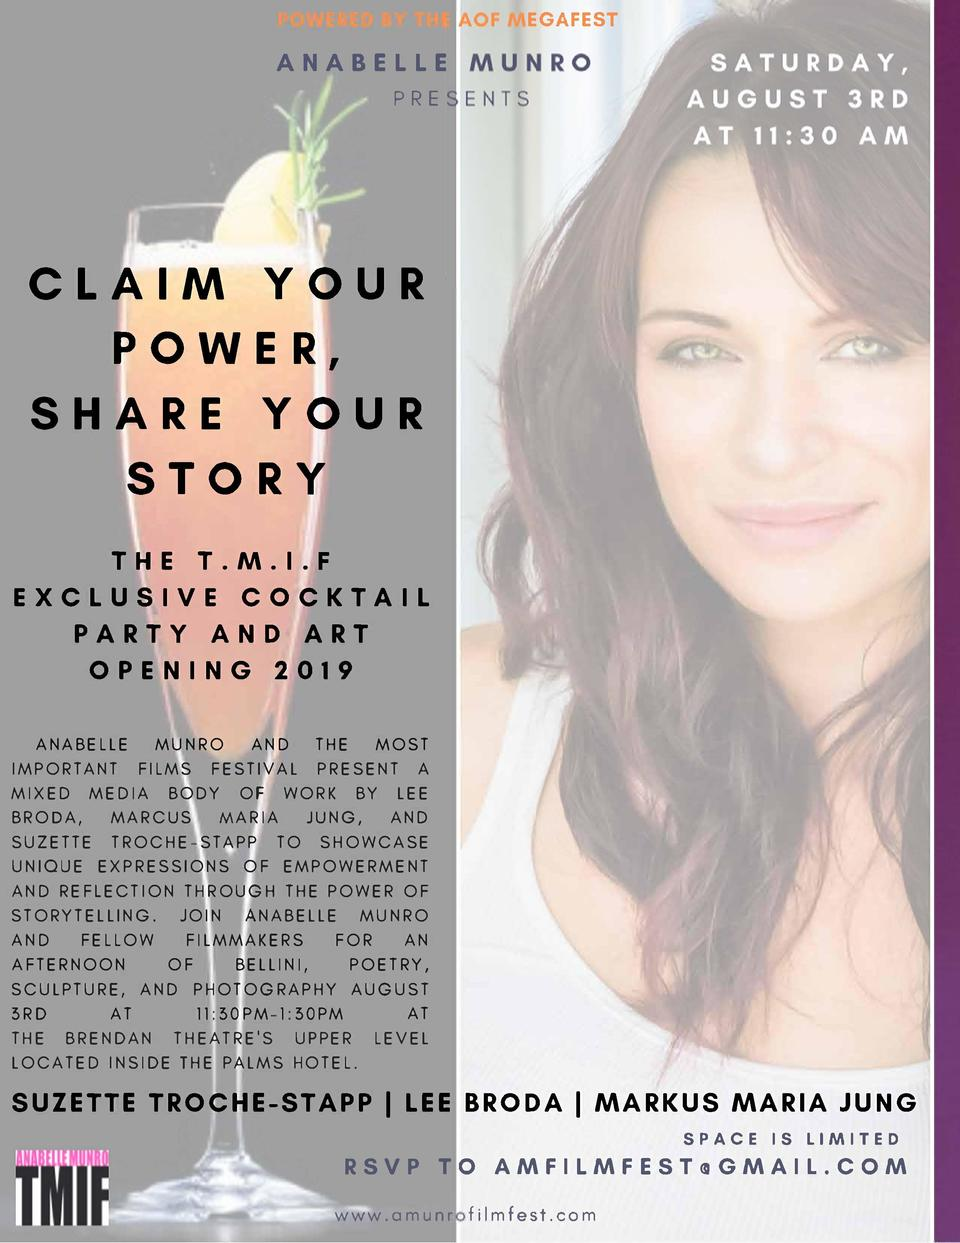 EGAFEST  ANABELLE PRE  CLAIM YOUR POWER, SHARE YOUR STORY  THE T.M.I.F EXCL U SIVE CO CK T AI L P A RTY AN D A RT OPENIN G...